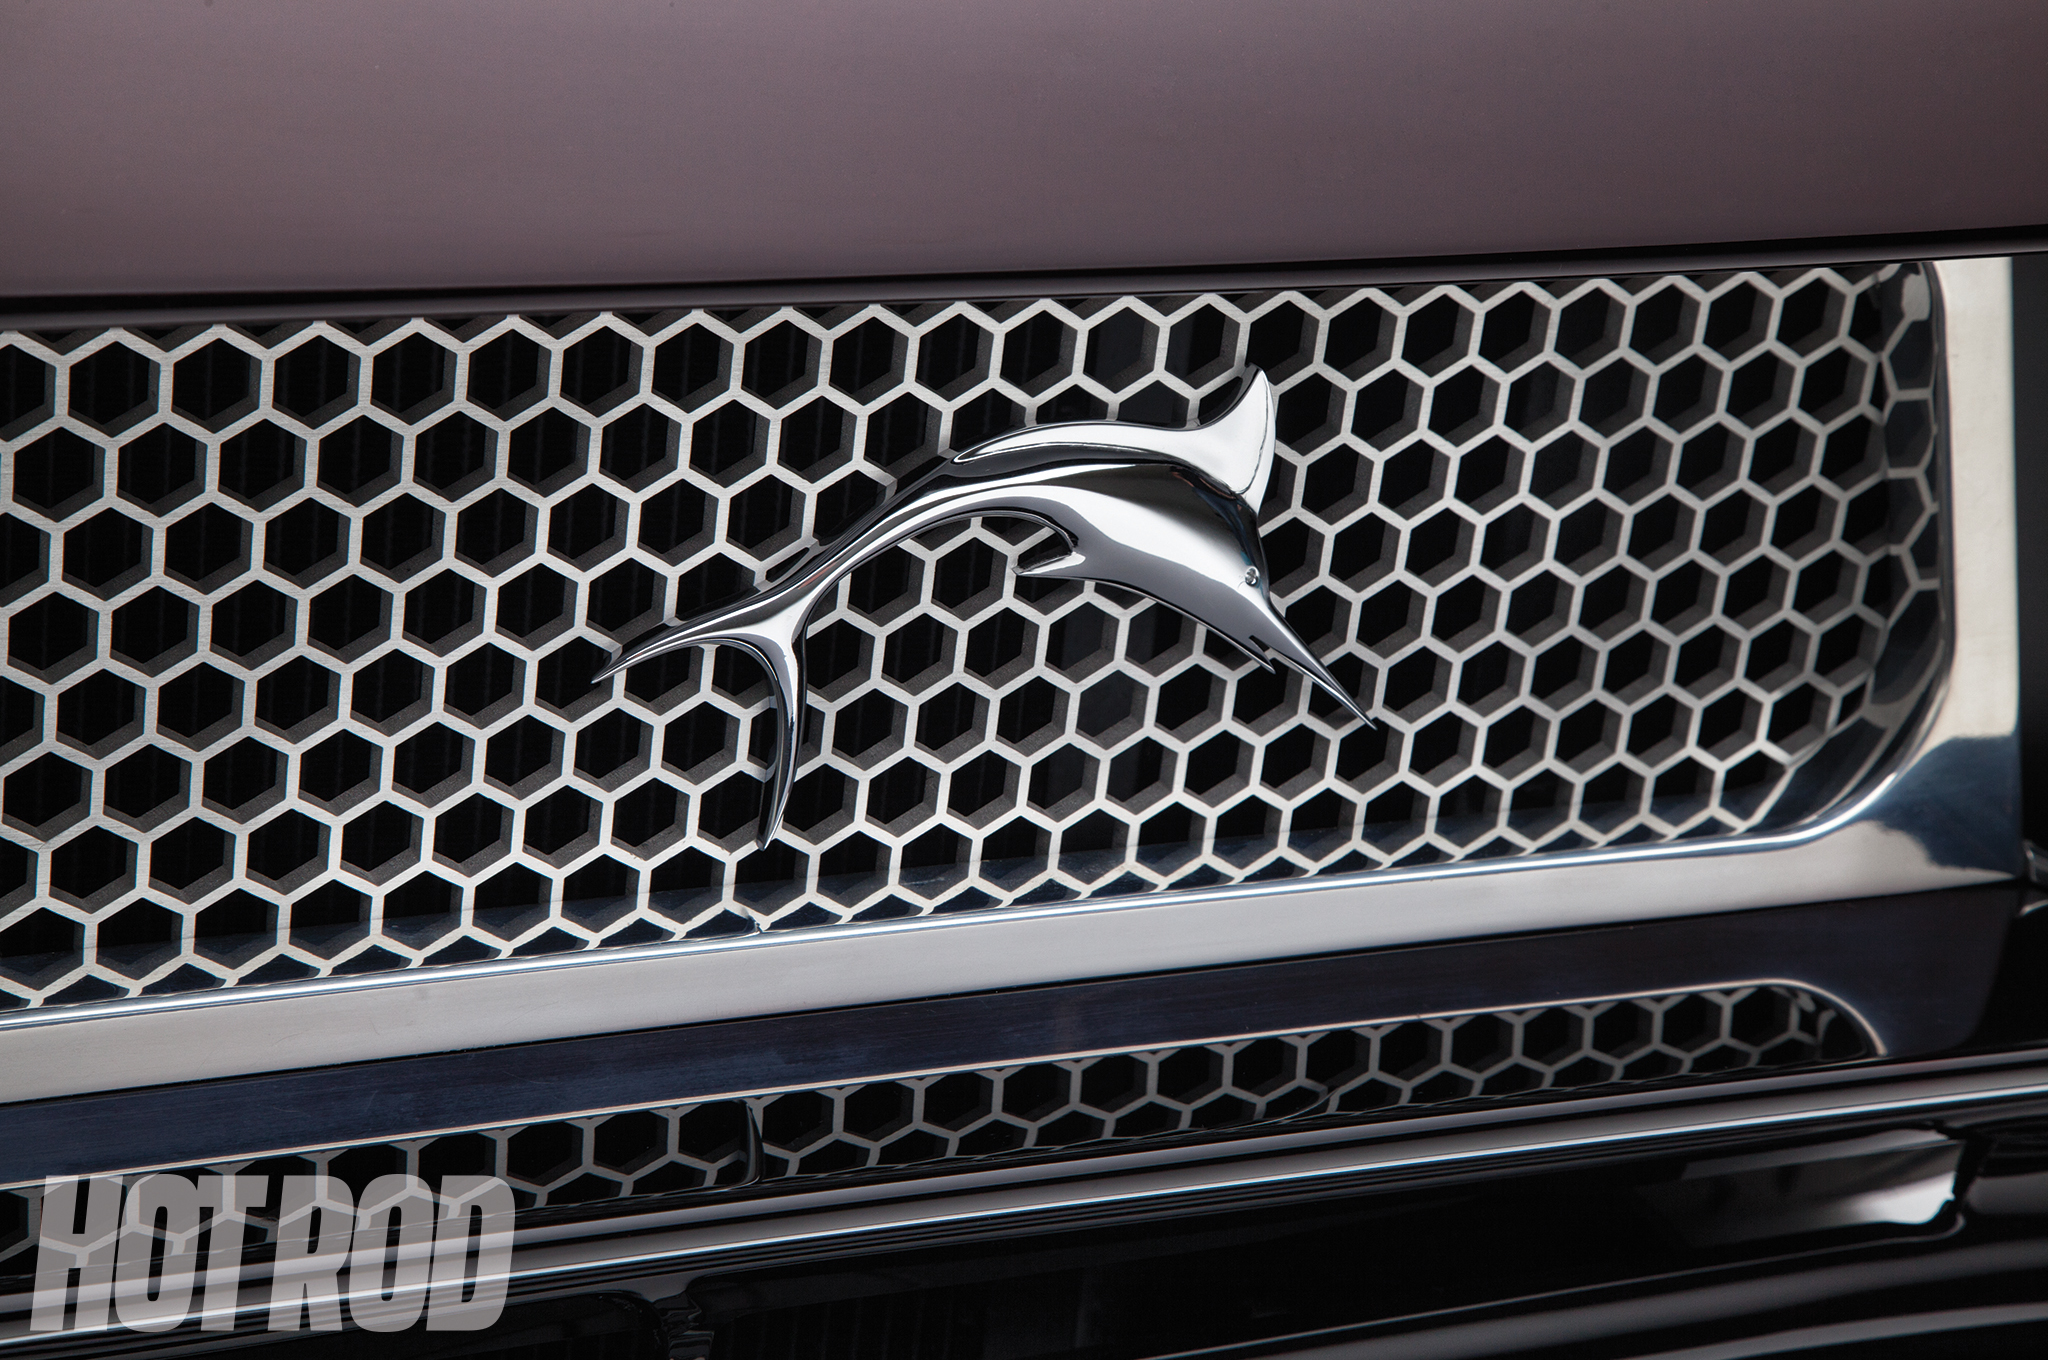 The honeycomb grille was CNC machined from aluminum.